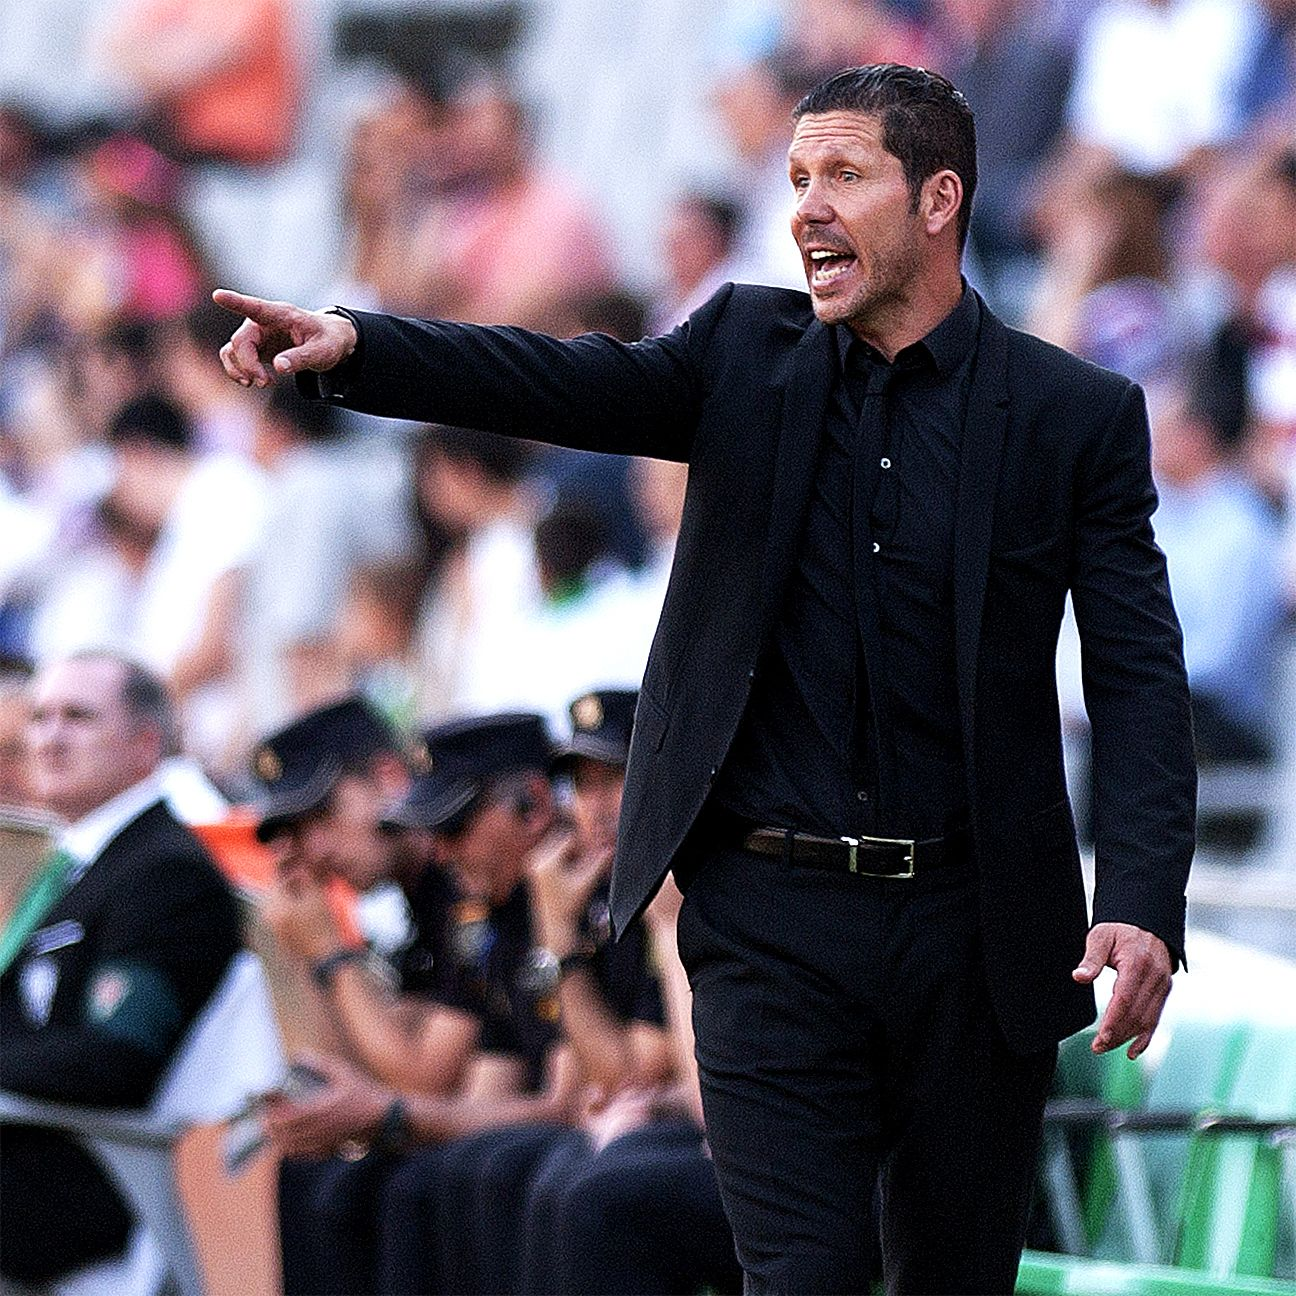 Diego Simeone's Atletico Madrid stayed in the hunt for a berth in next season's Champions League with a 2-0 win over Cordoba on Saturday.